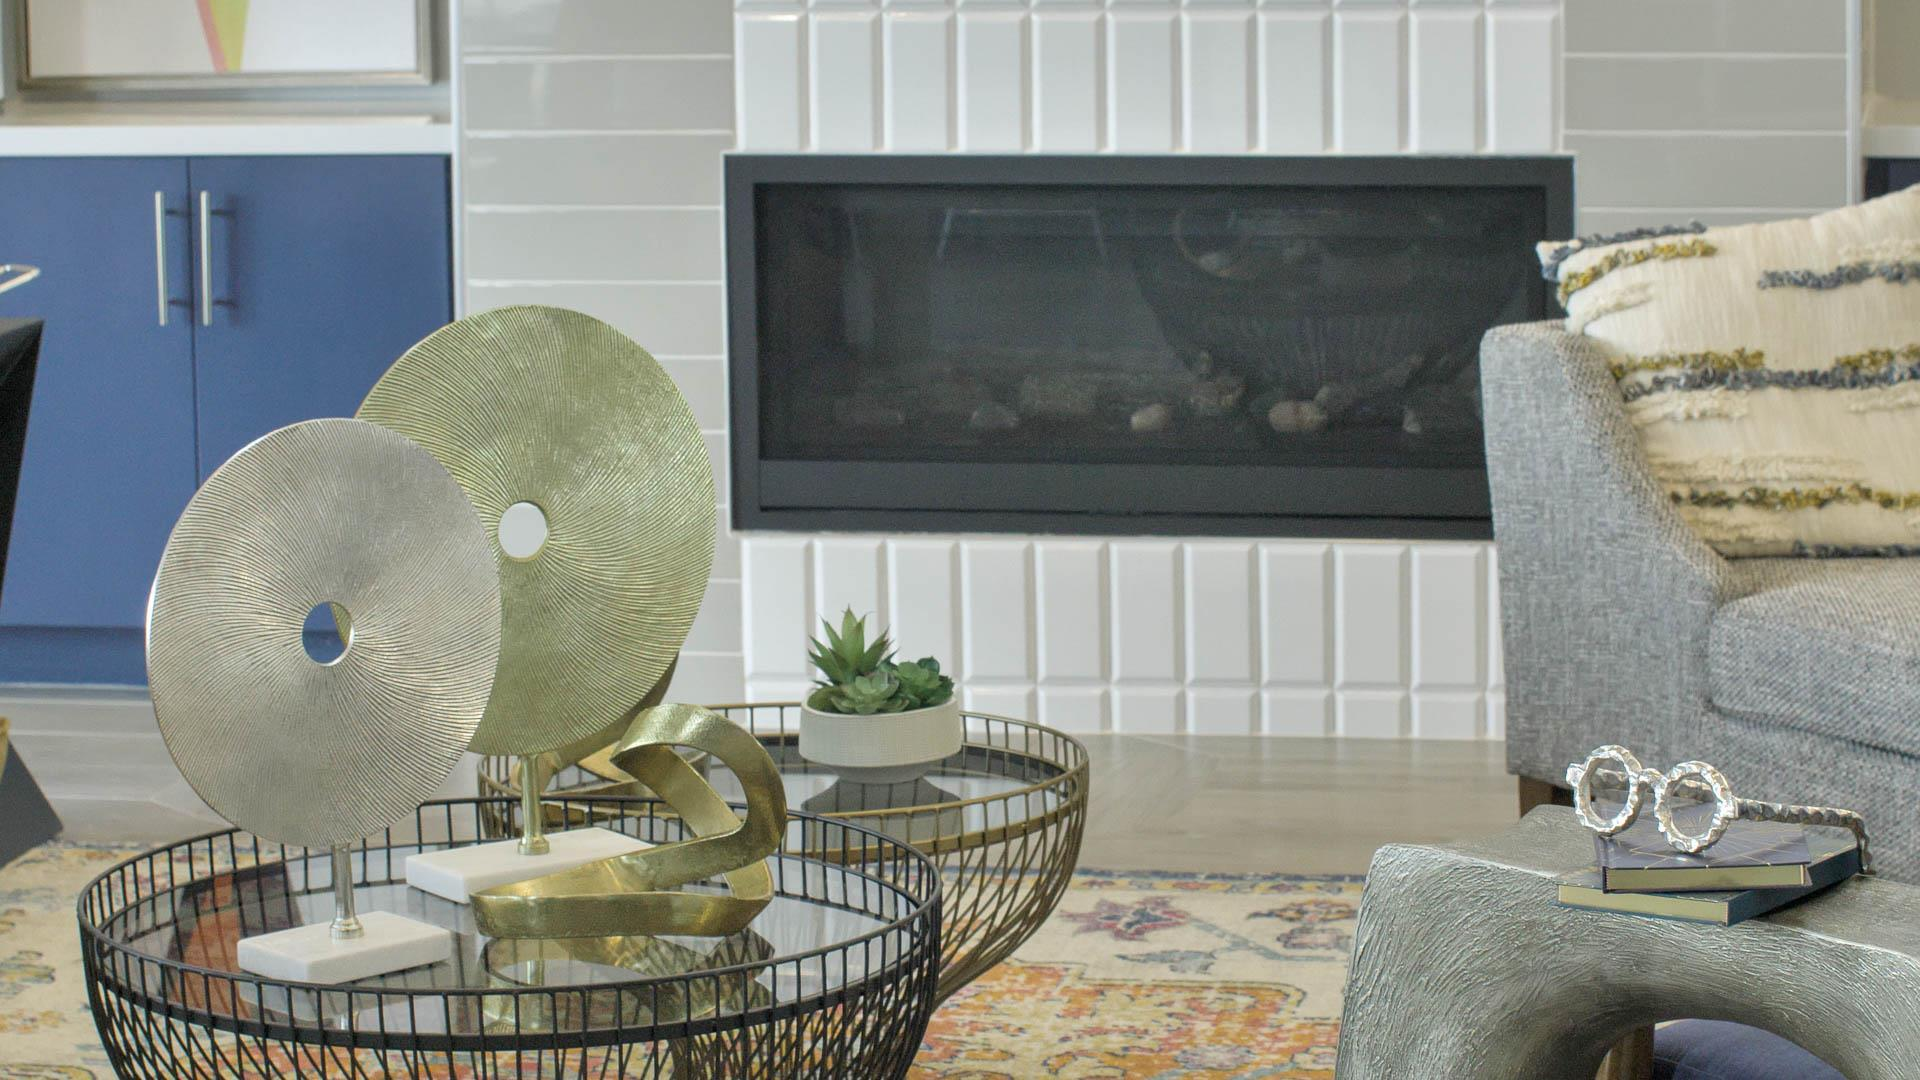 Living Area featured in the J606 By Mandalay Homes in Prescott, AZ